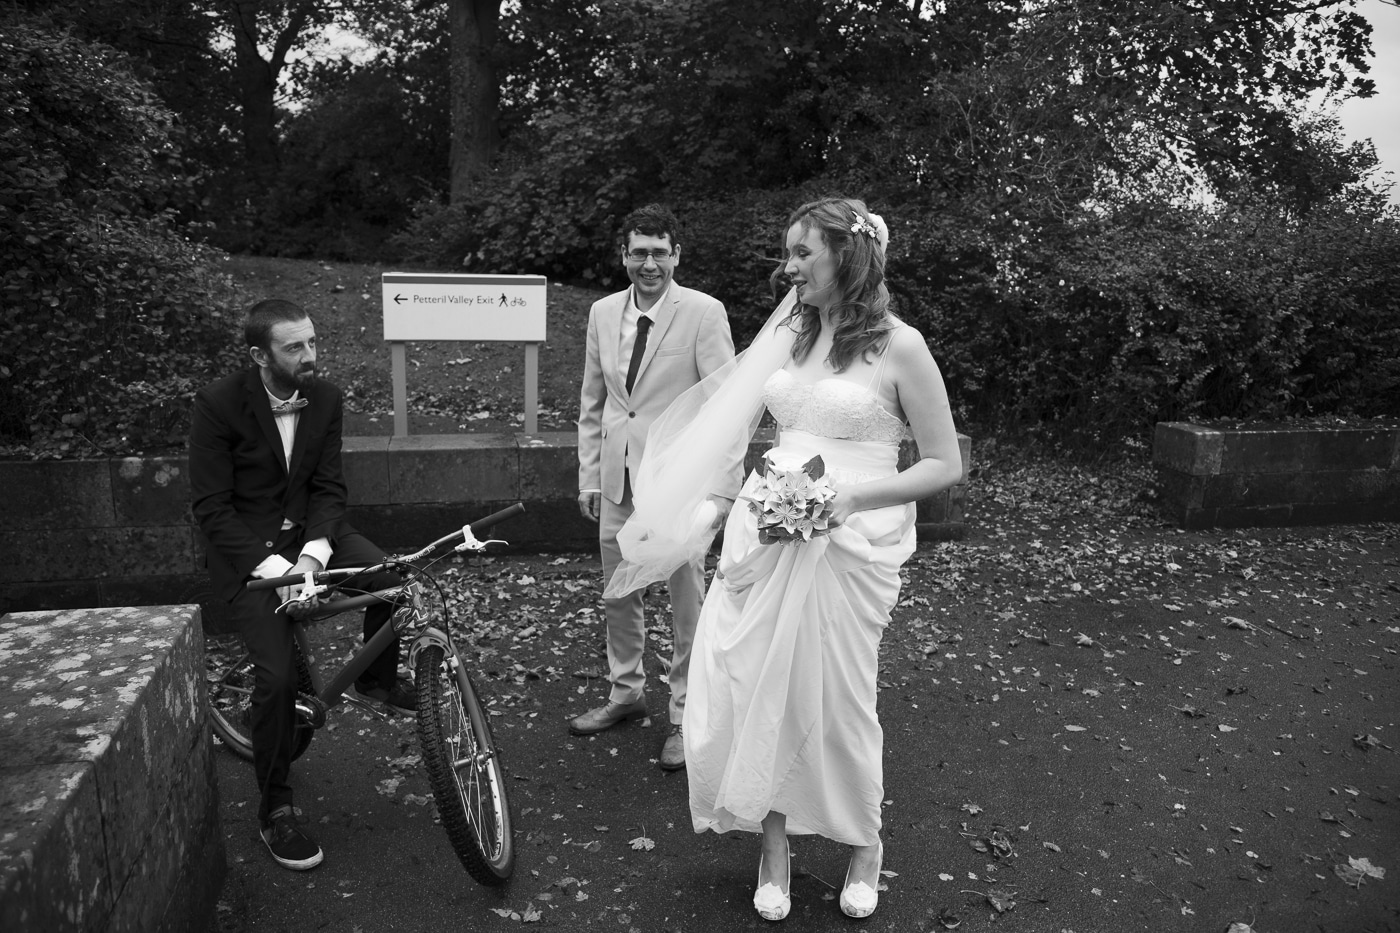 Bride and groom on bike by Joshua Wyborn